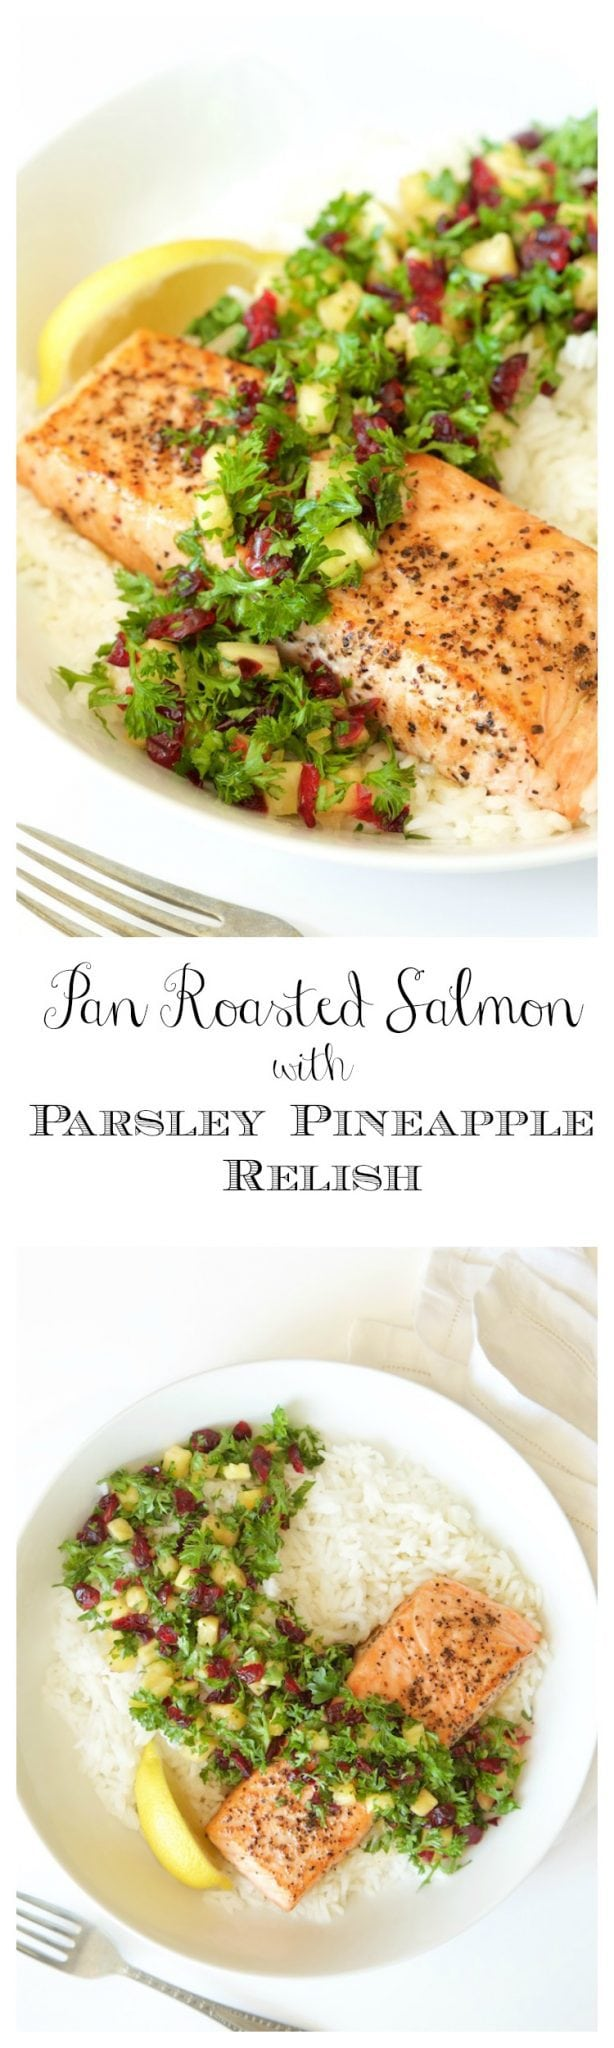 Pan Roasted Salmon with Parsley Pineapple Relish - healthy, delicious, dinner party status - in 30 minutes!